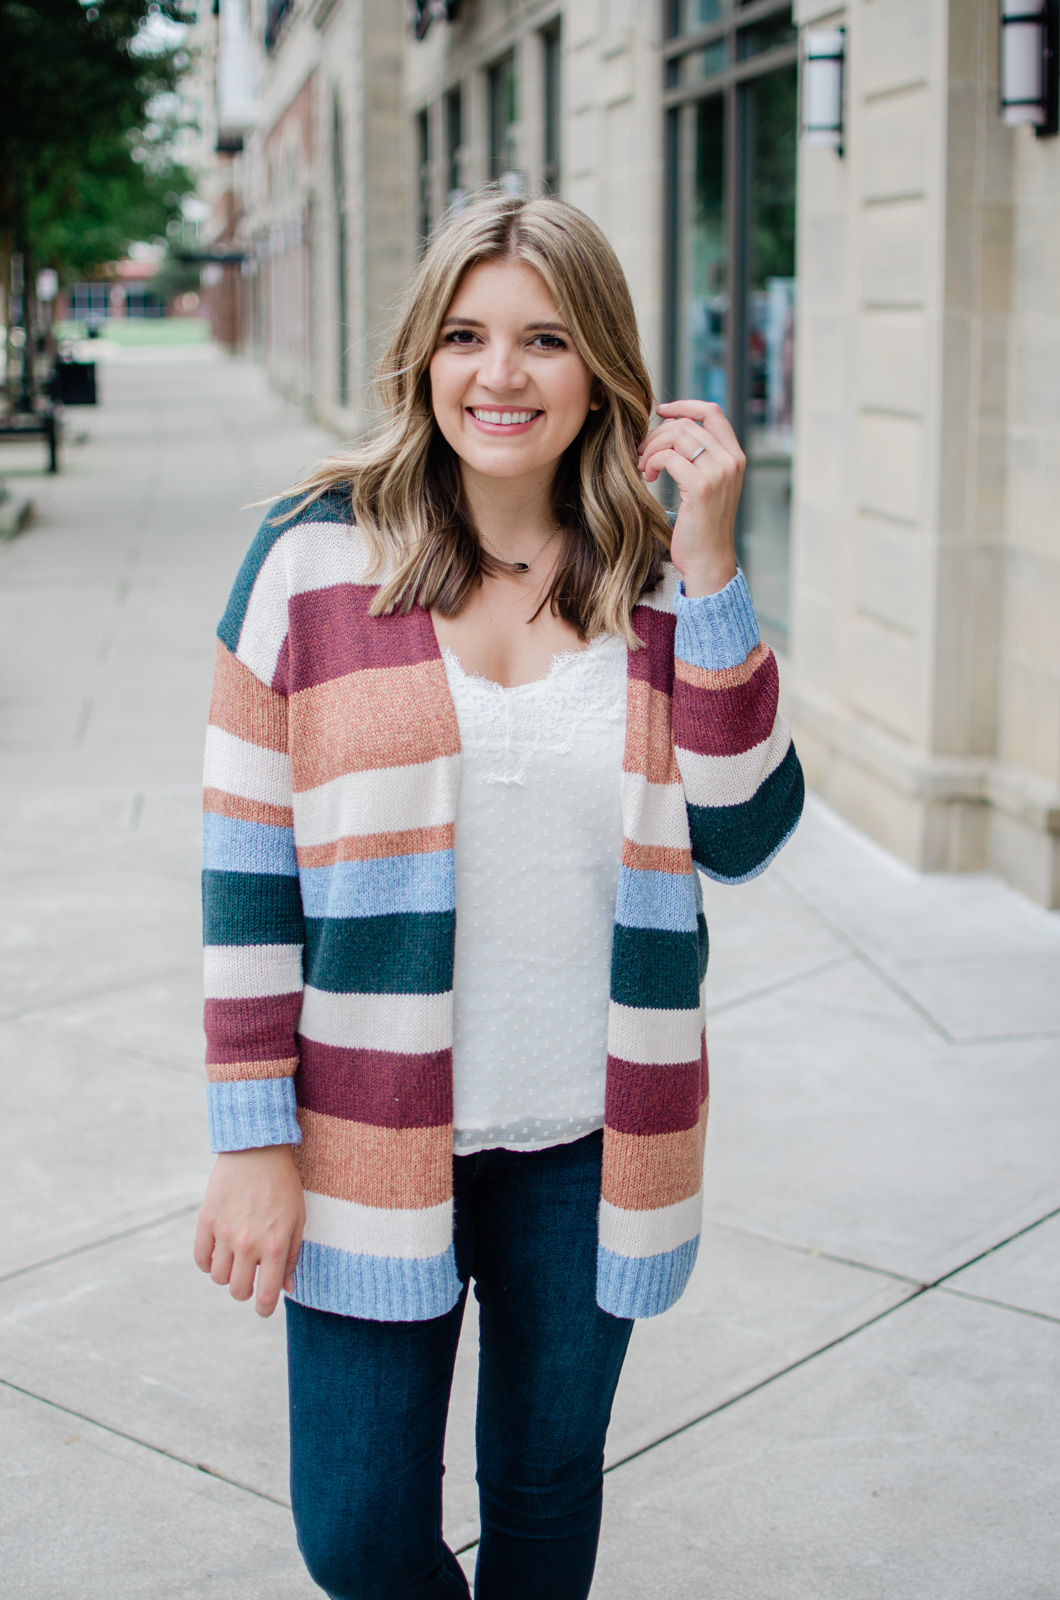 fall wardrobe favorites - fall striped cardigan outfit bylaurenm.com